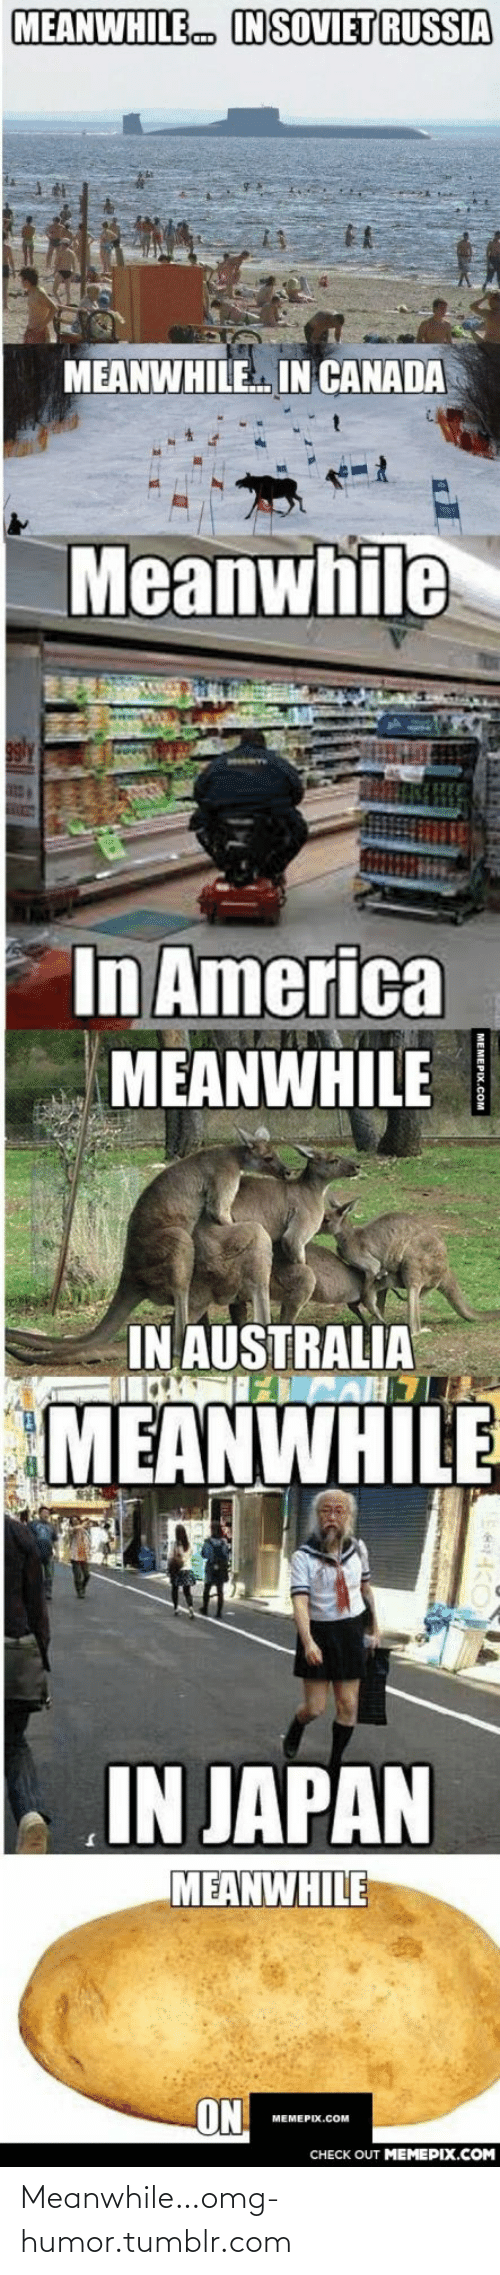 Meanwhile In Australia: MEANWHILE  IN SOVIET RUSSIA  MEANWHILE IN CANADA  Meanwhile  In America  MEANWHILE  IN AUSTRALIA  MEANWHILE  IN JAPAN  MEANWHILE  ON  МЕМЕРIХ.COм  CHECK OUT MEMEPIX.COM Meanwhile…omg-humor.tumblr.com